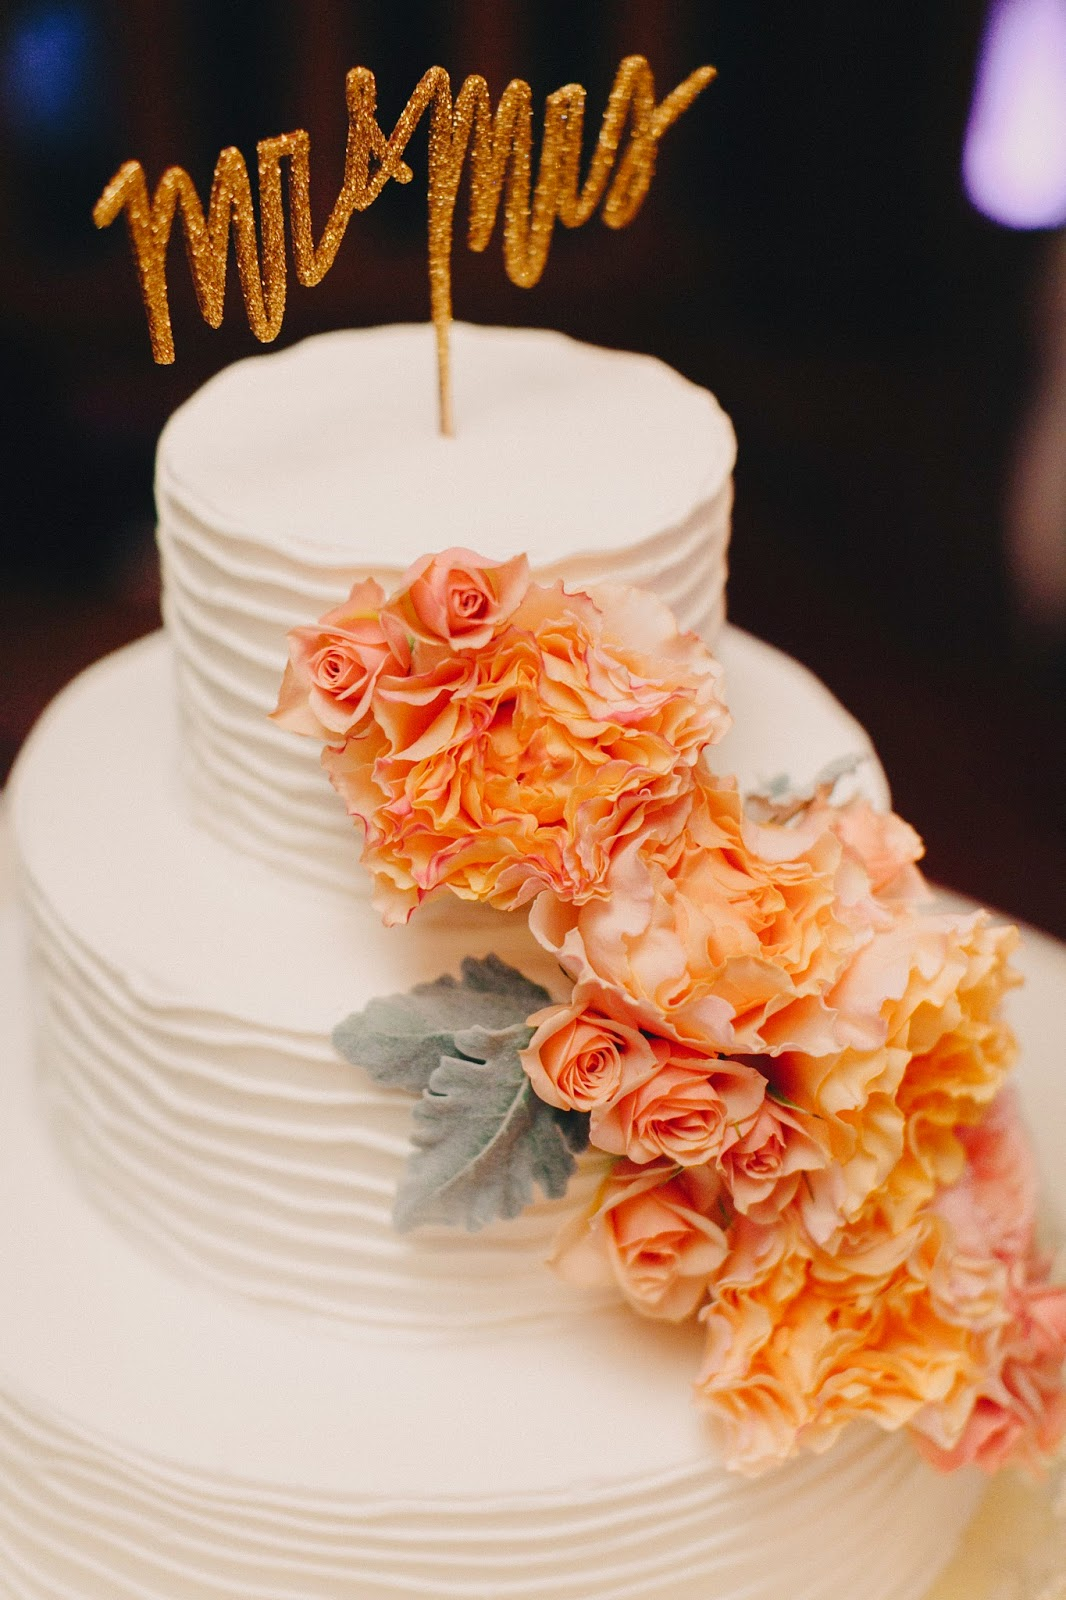 les fleurs : jess jolin photography : cake flowers : roses and dusty miller : peach and coral